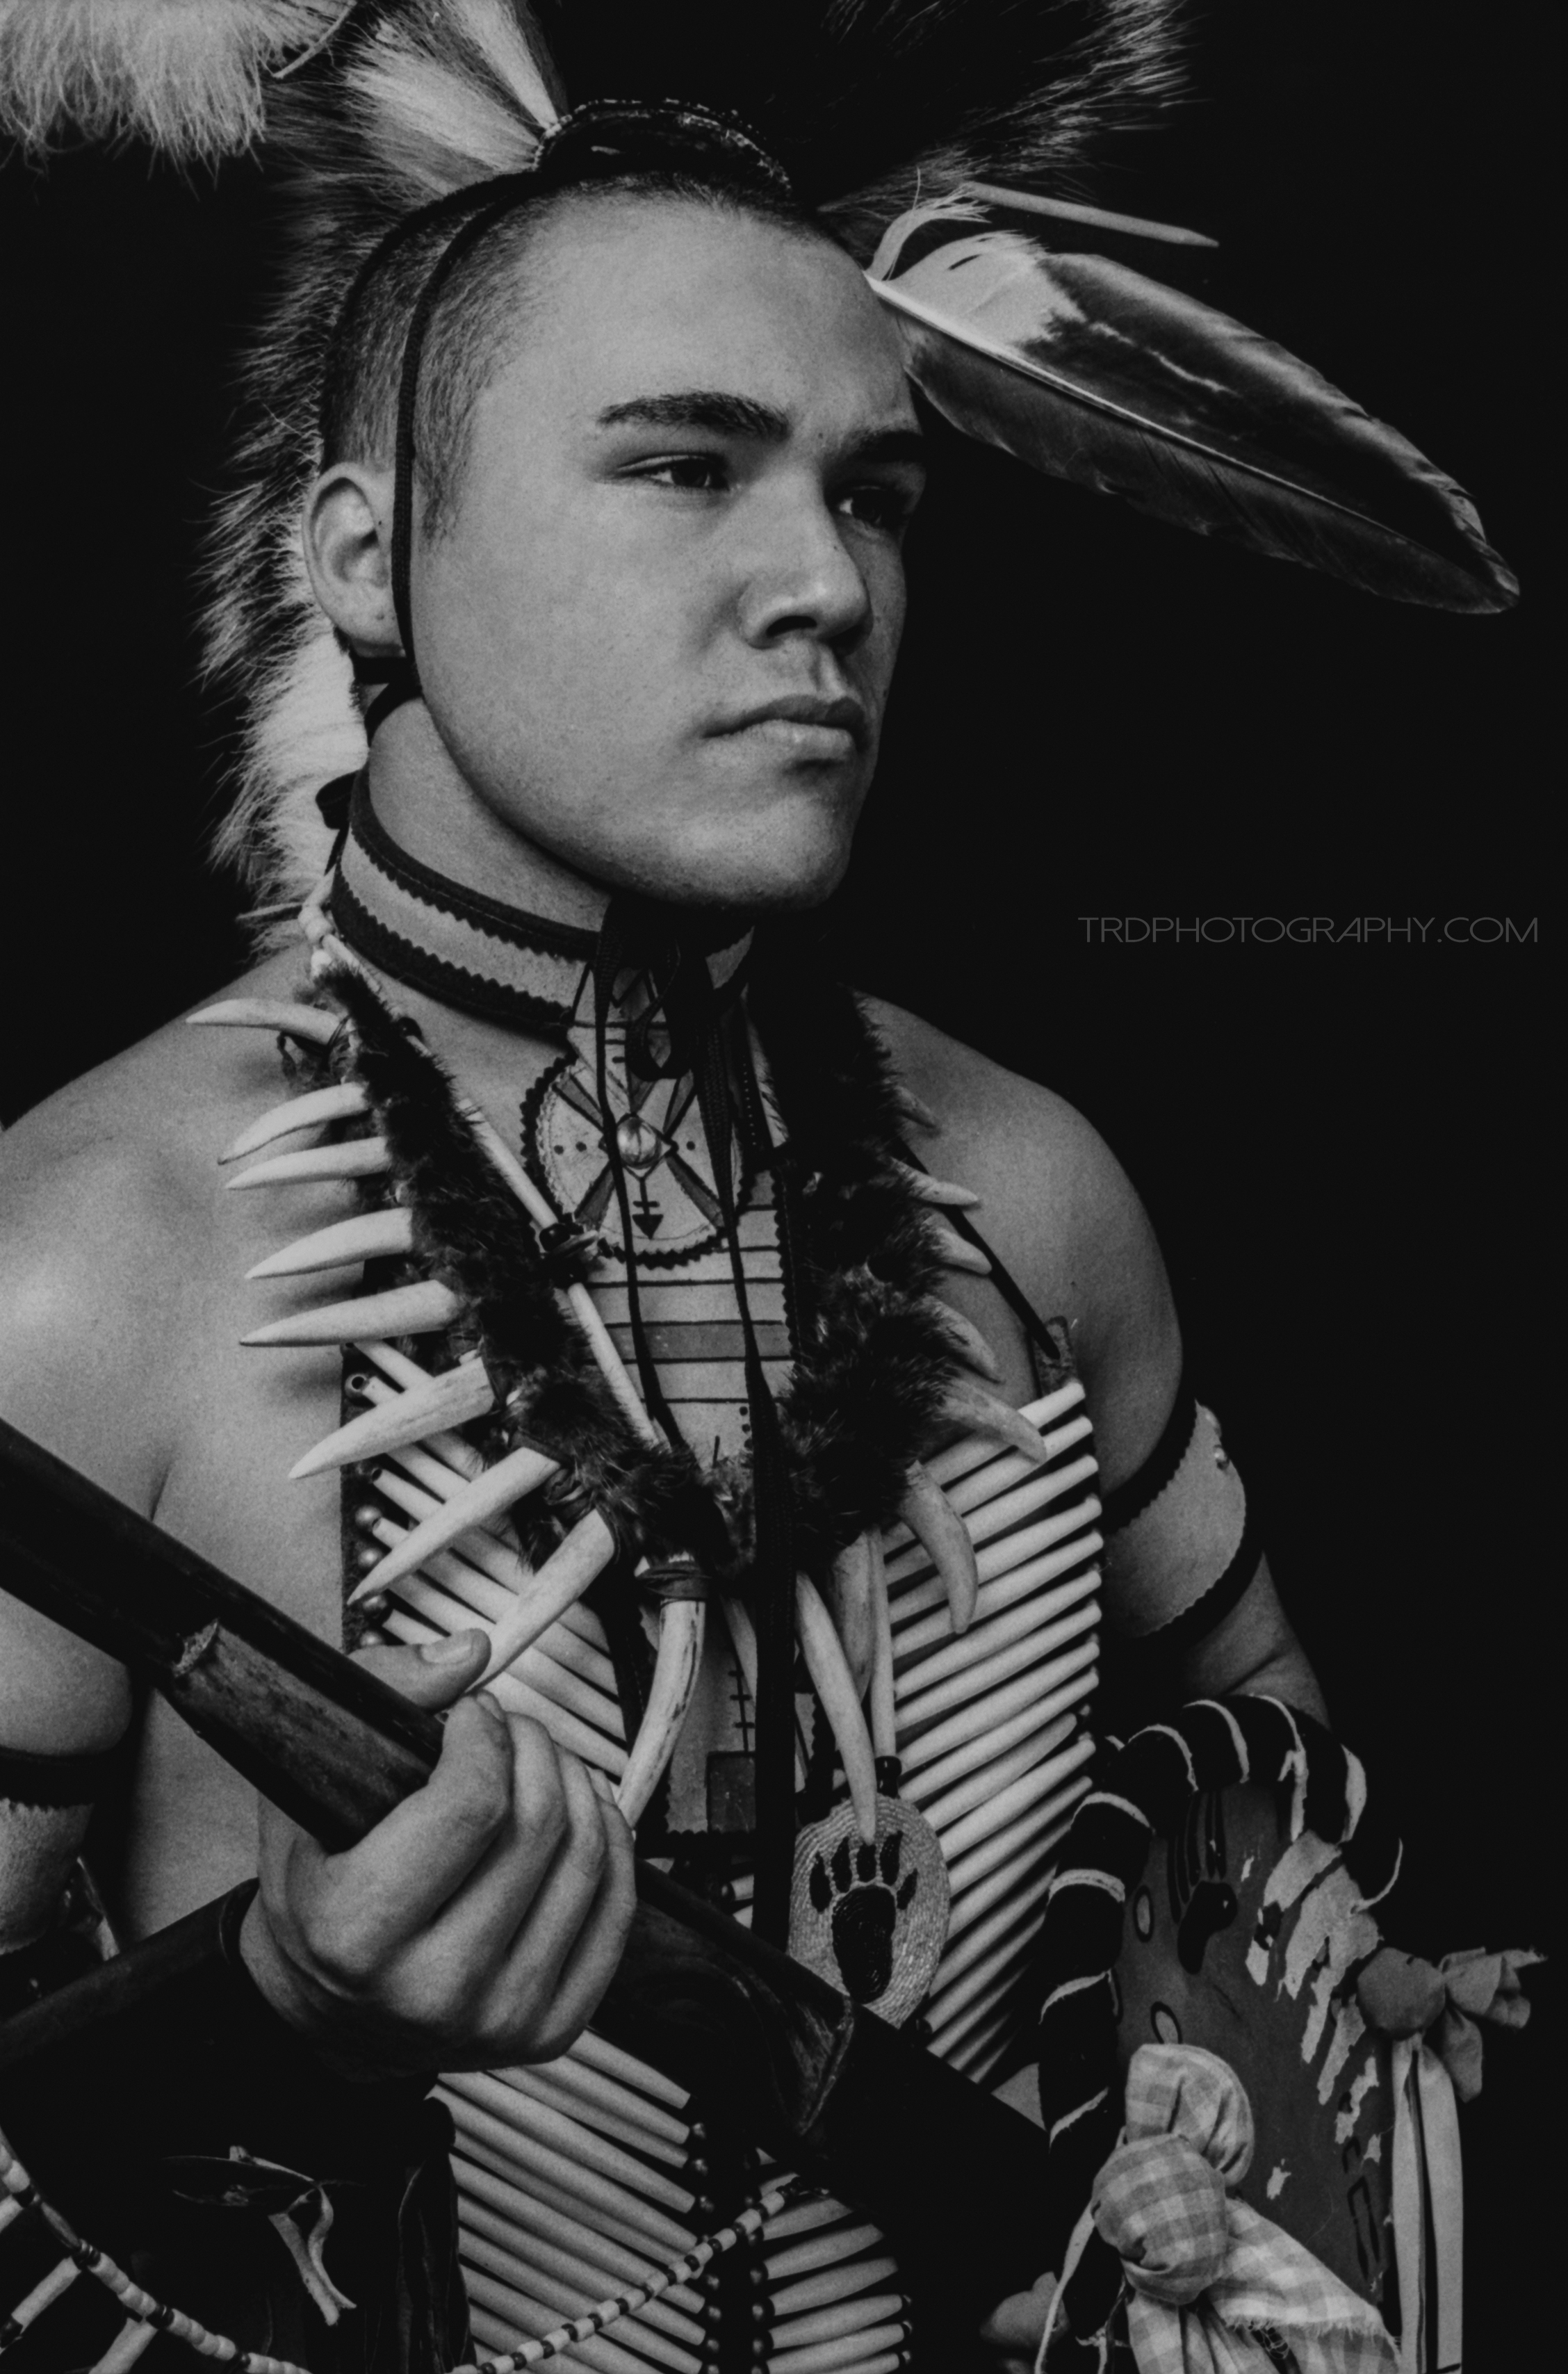 Native American Portrait Series - Michael Brenton Morrison - TRD Photography